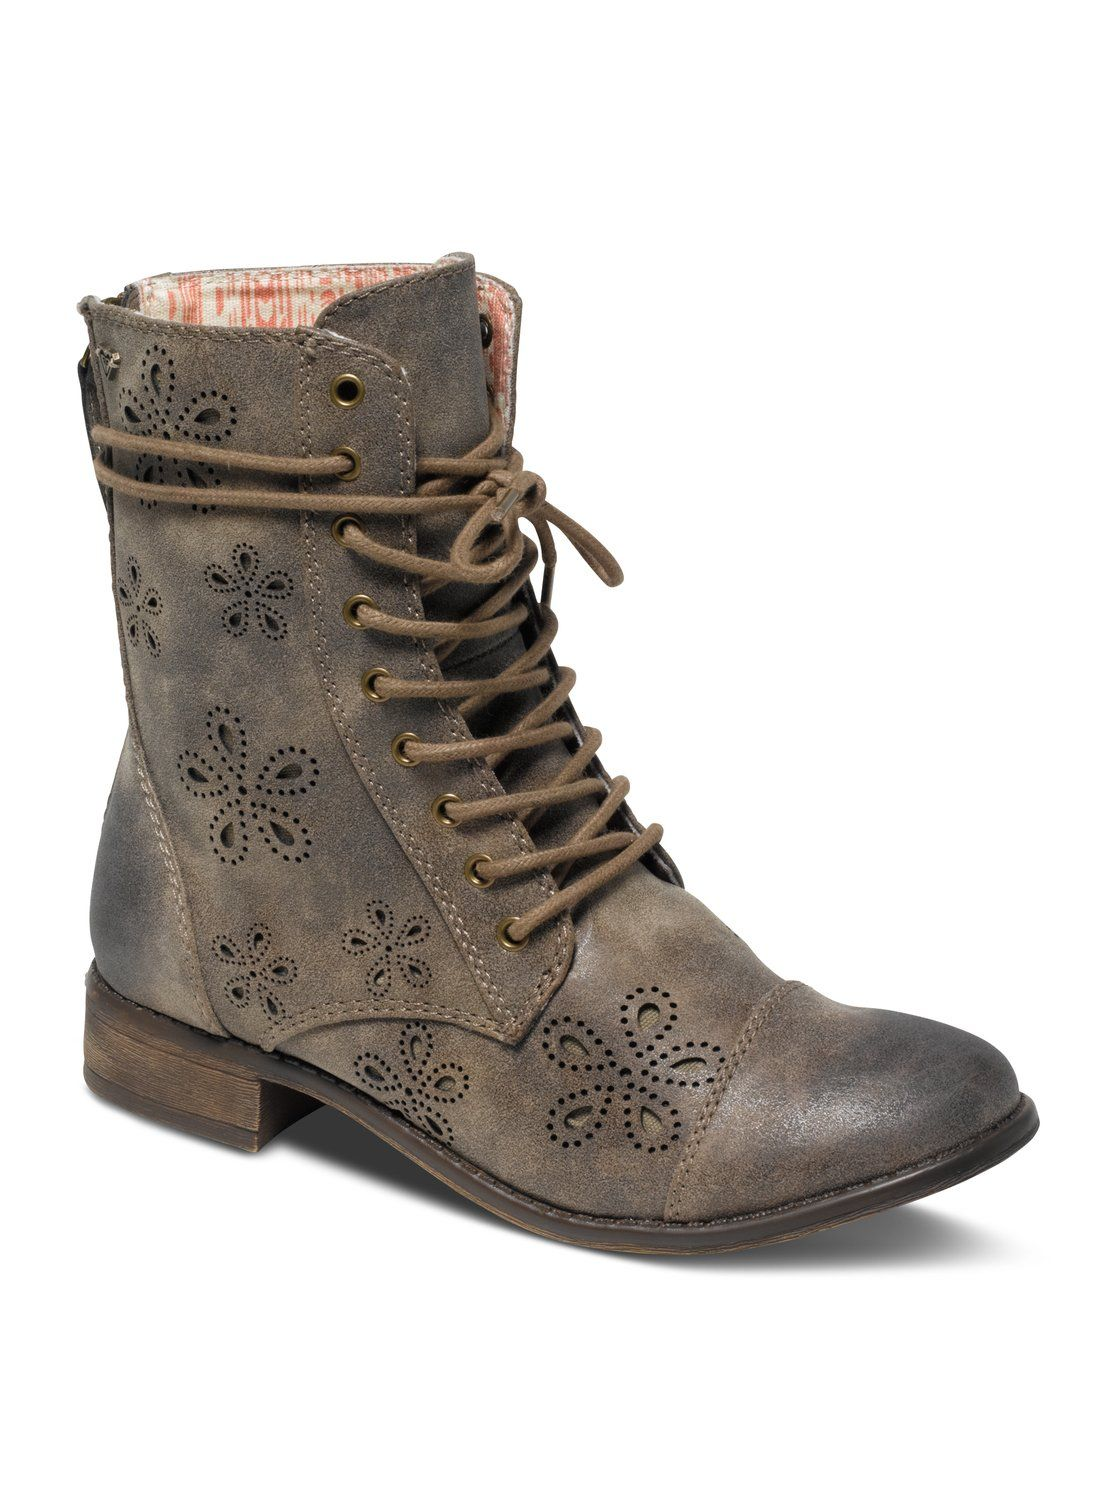 Roxy - Lace-Up Boots for Women